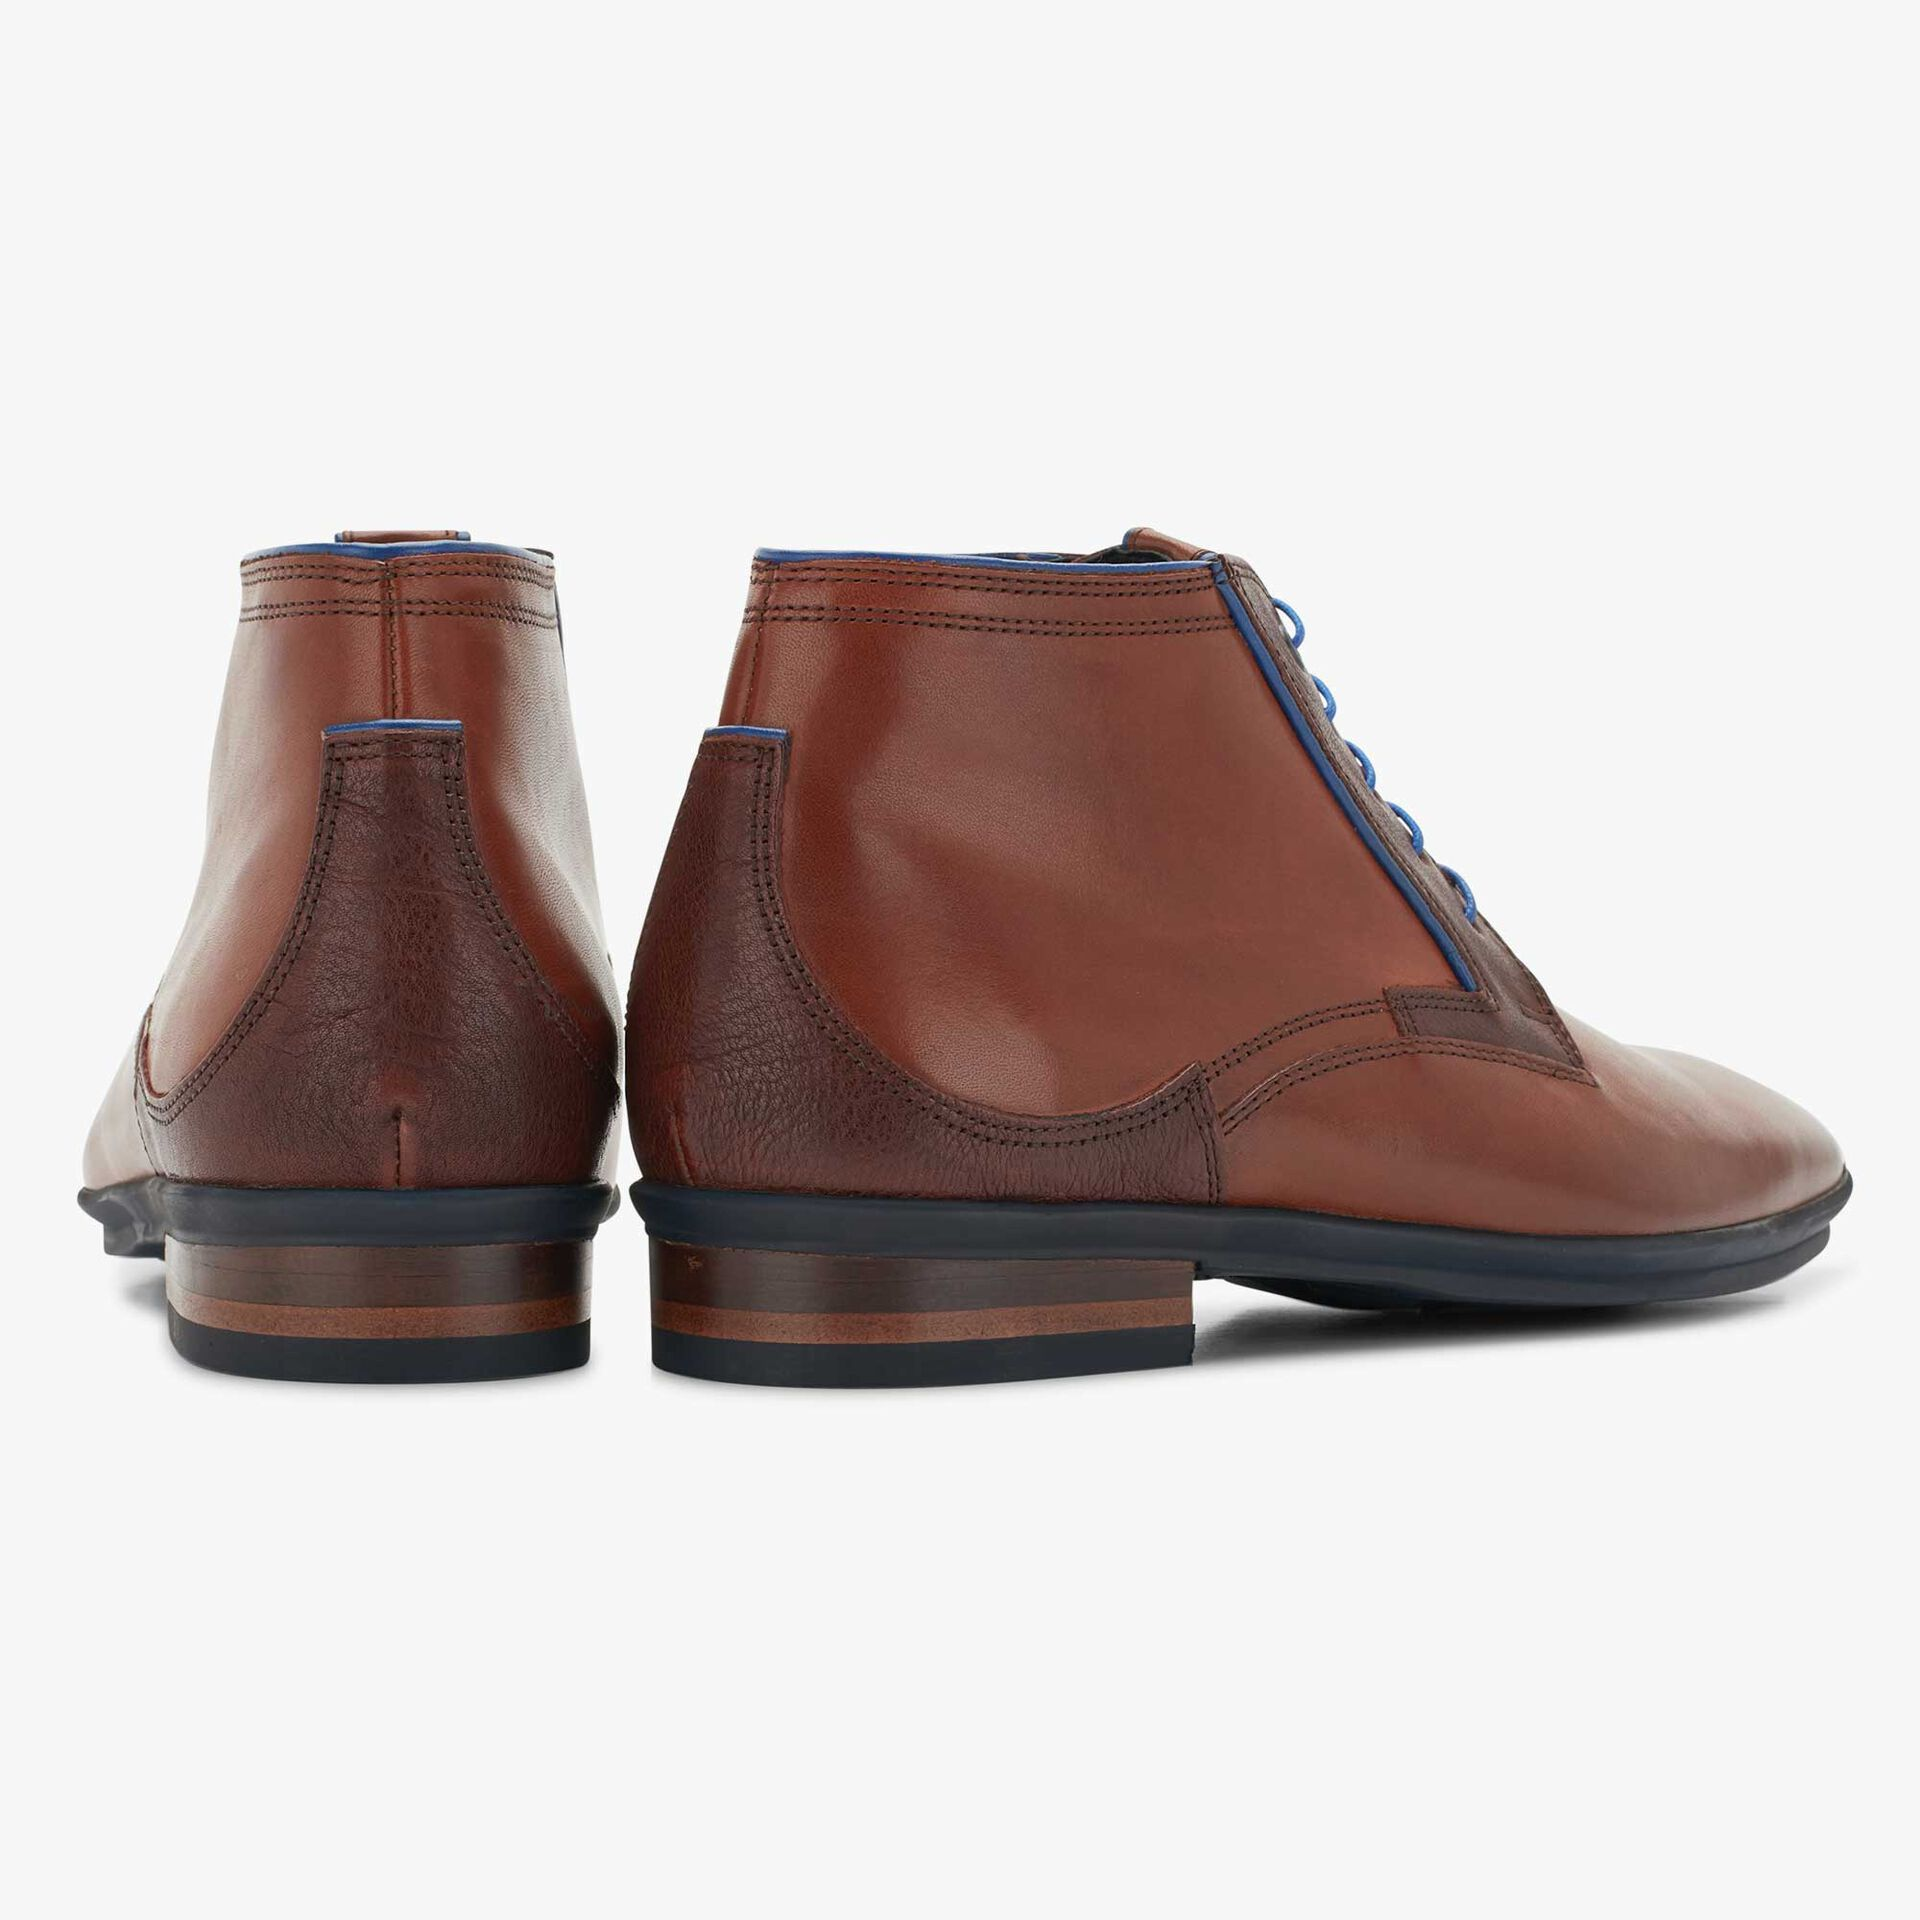 Cognac-coloured mid-high leather lace boot